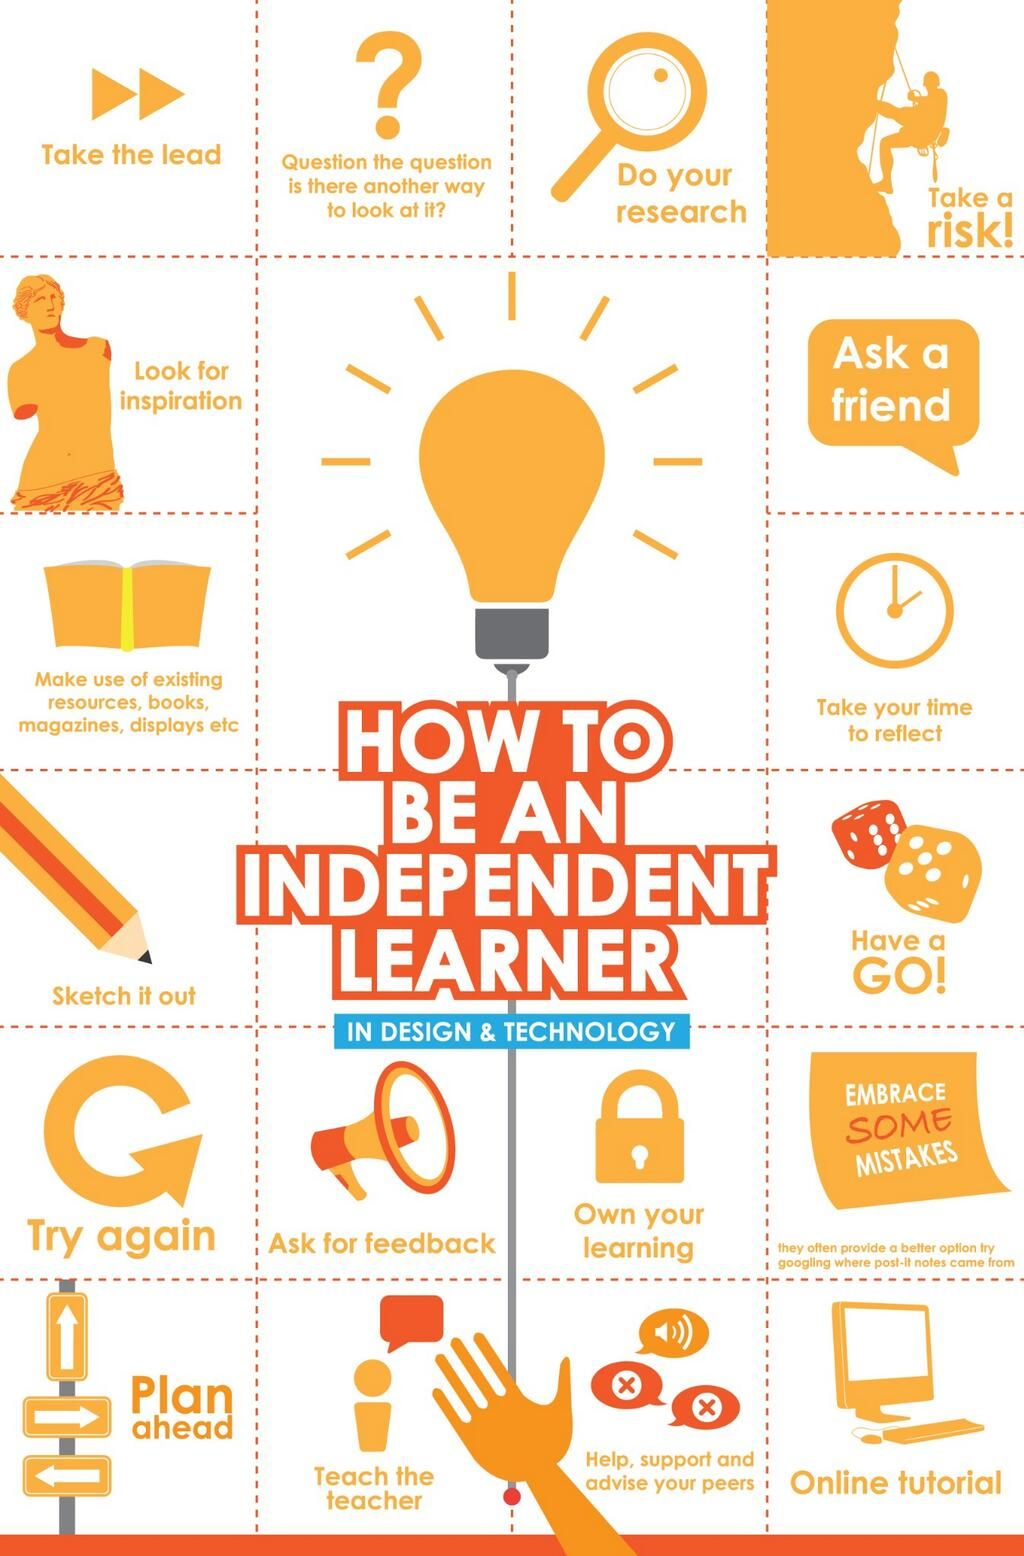 Awesome Visual Featuring 18 Tips To Raise Independent Learners